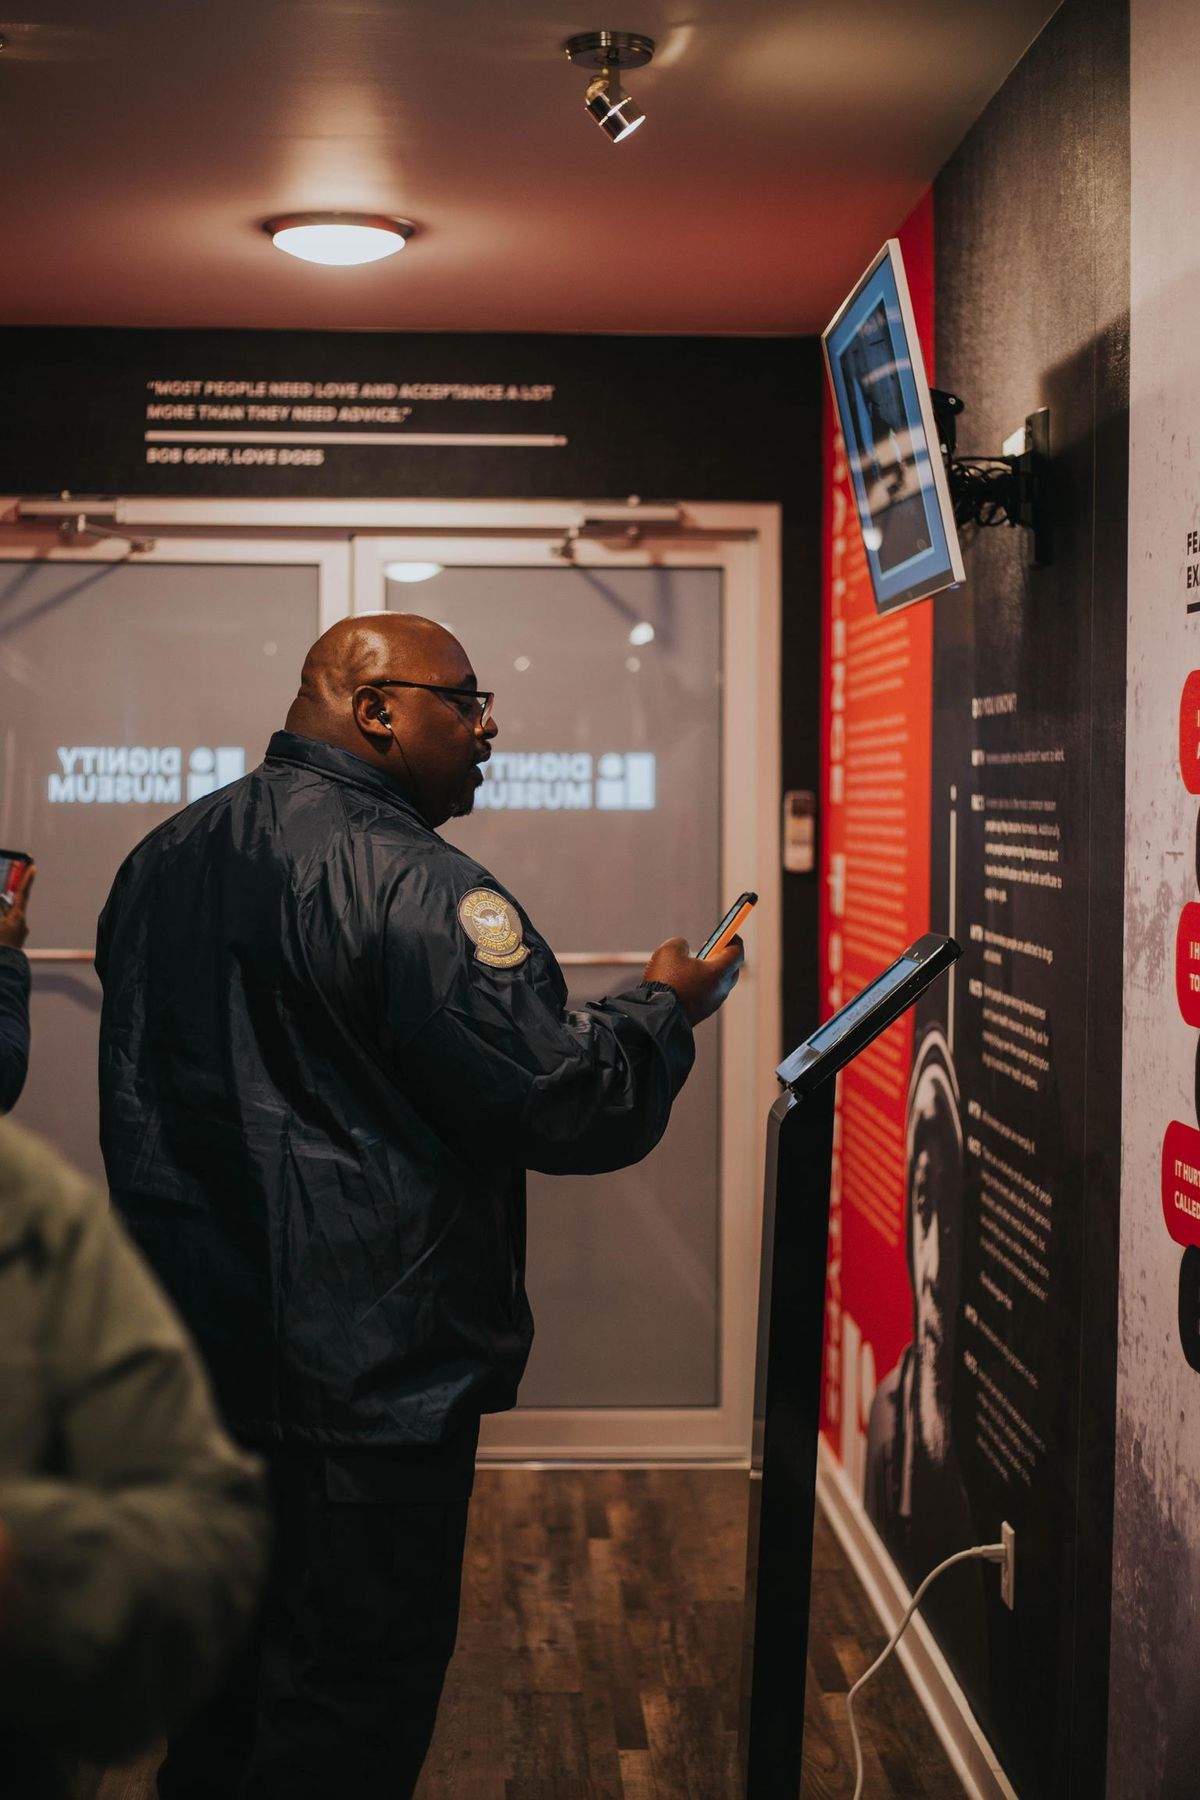 An Atlanta police officer uses the phone app to learn about homelessness.